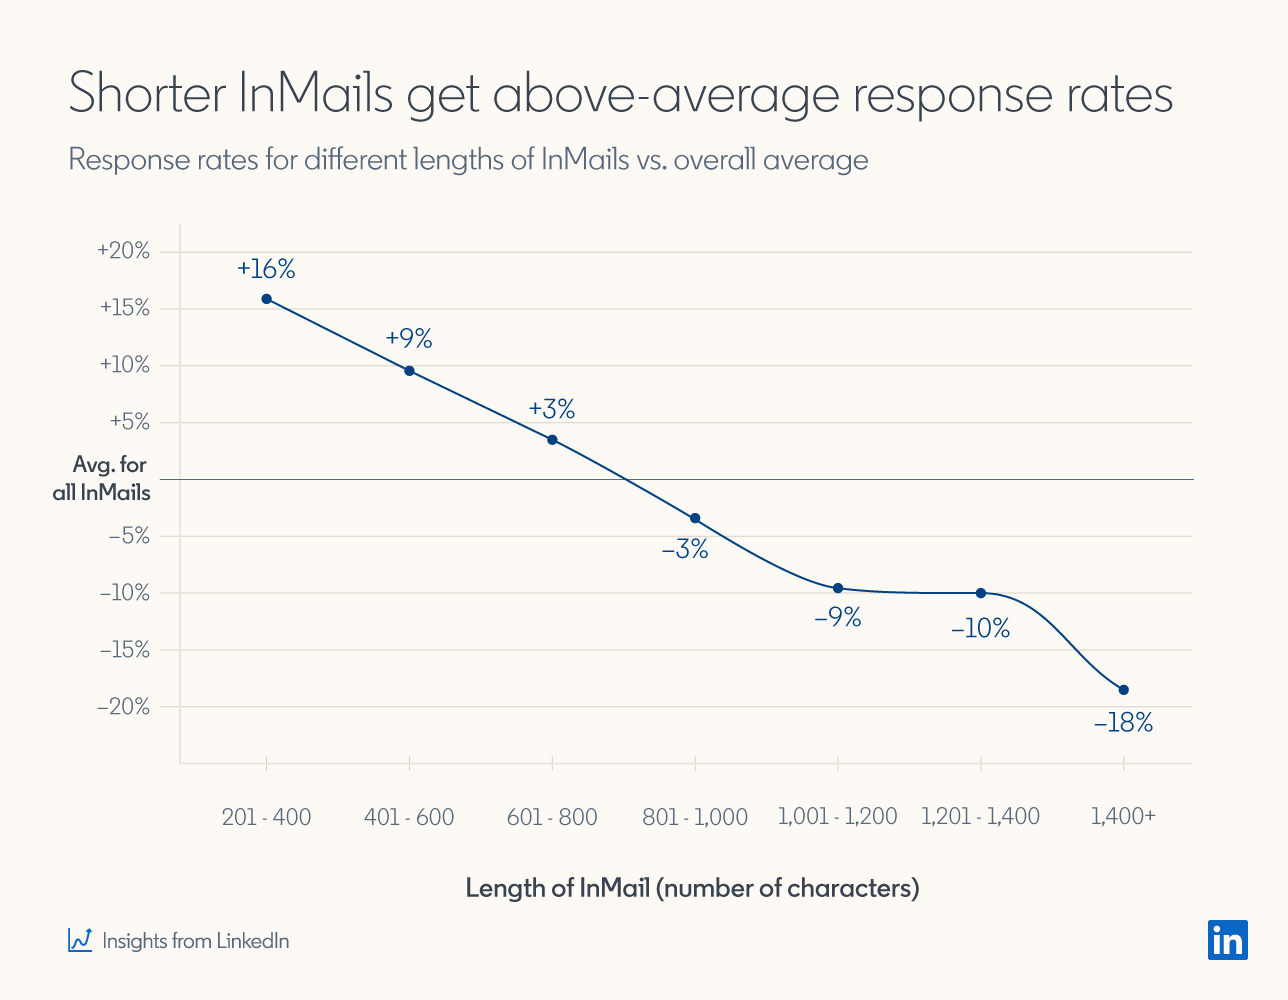 Graph showing that shorter InMails get above-average response rates